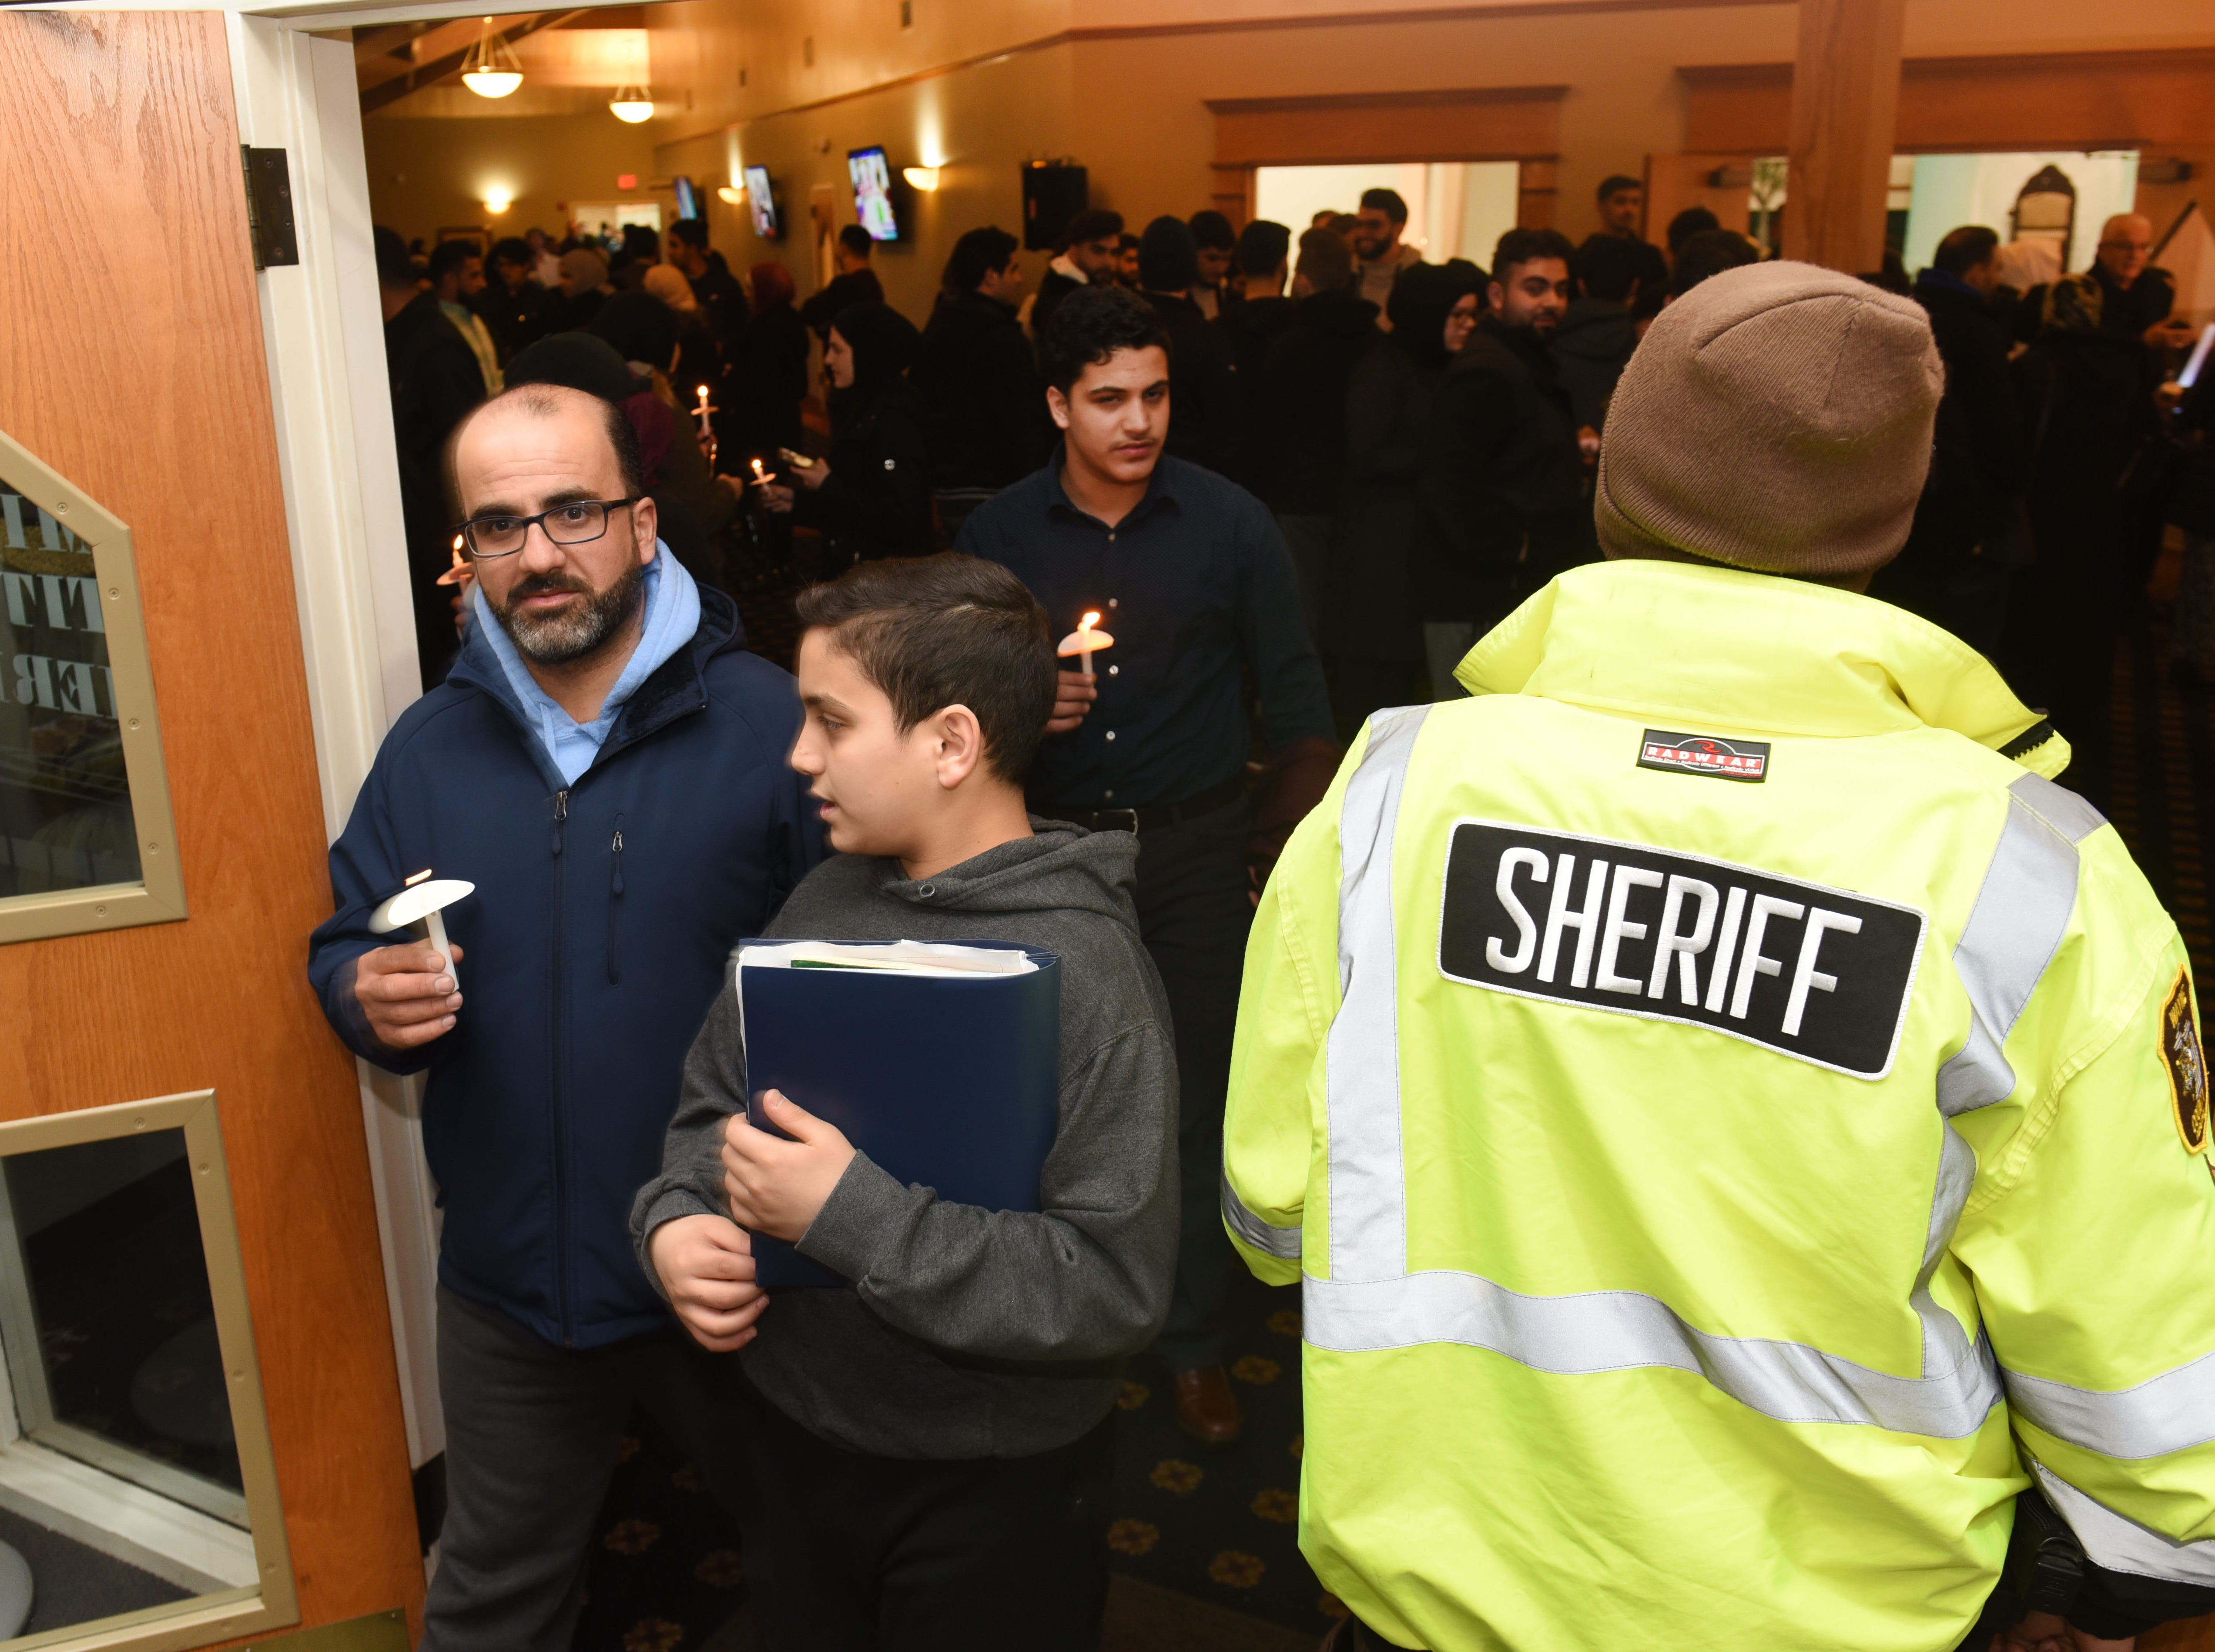 A Wayne County Sheriff stands at the entrance to the Islamic Institute of America as local Muslims hold a vigil in remembrance of the lives lost in New Zealand.